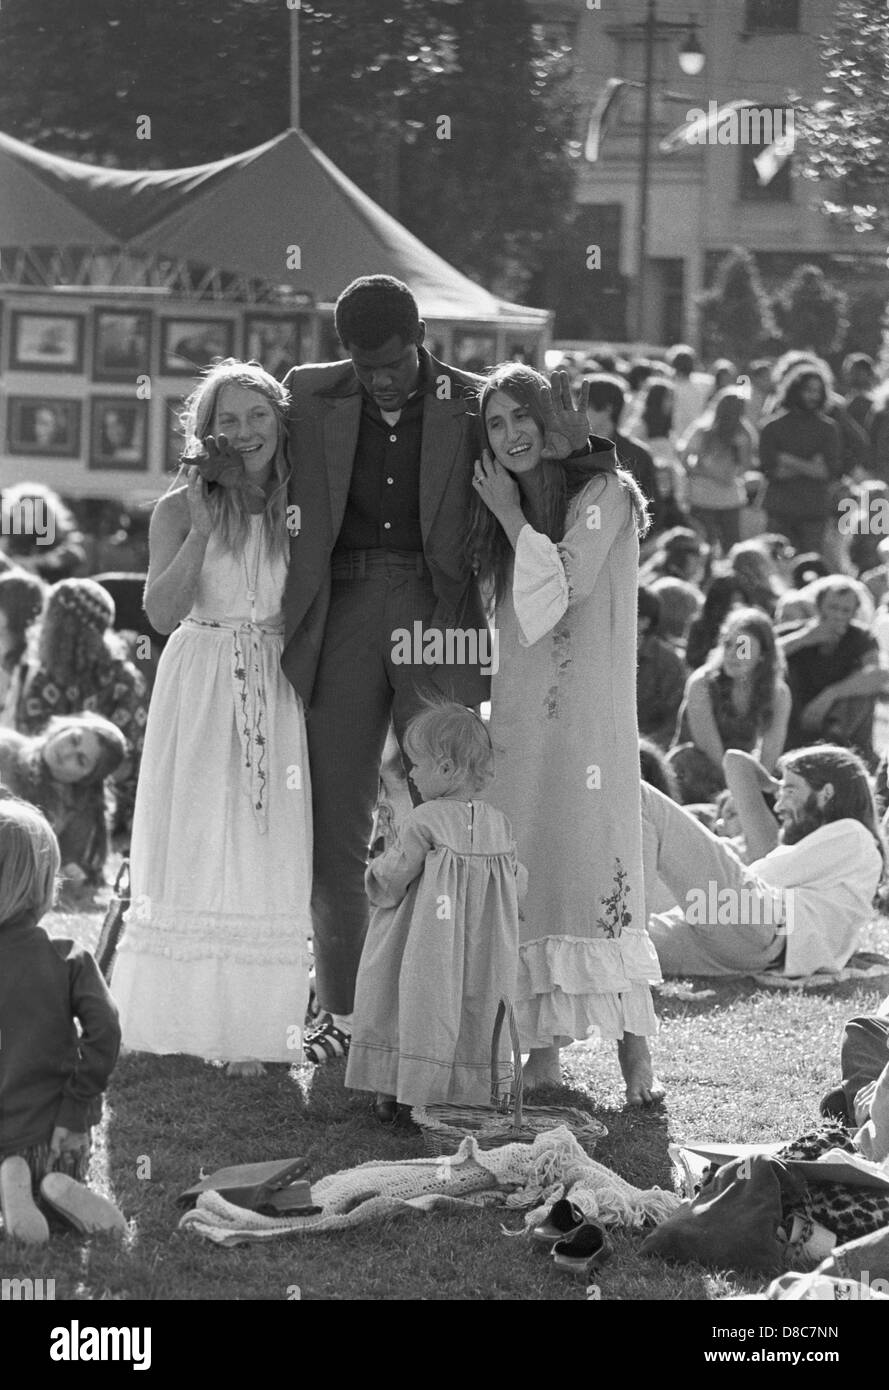 hippies and concert fans  dance and party at sixties art and rock music festival in North Beach San Francisco - Stock Image